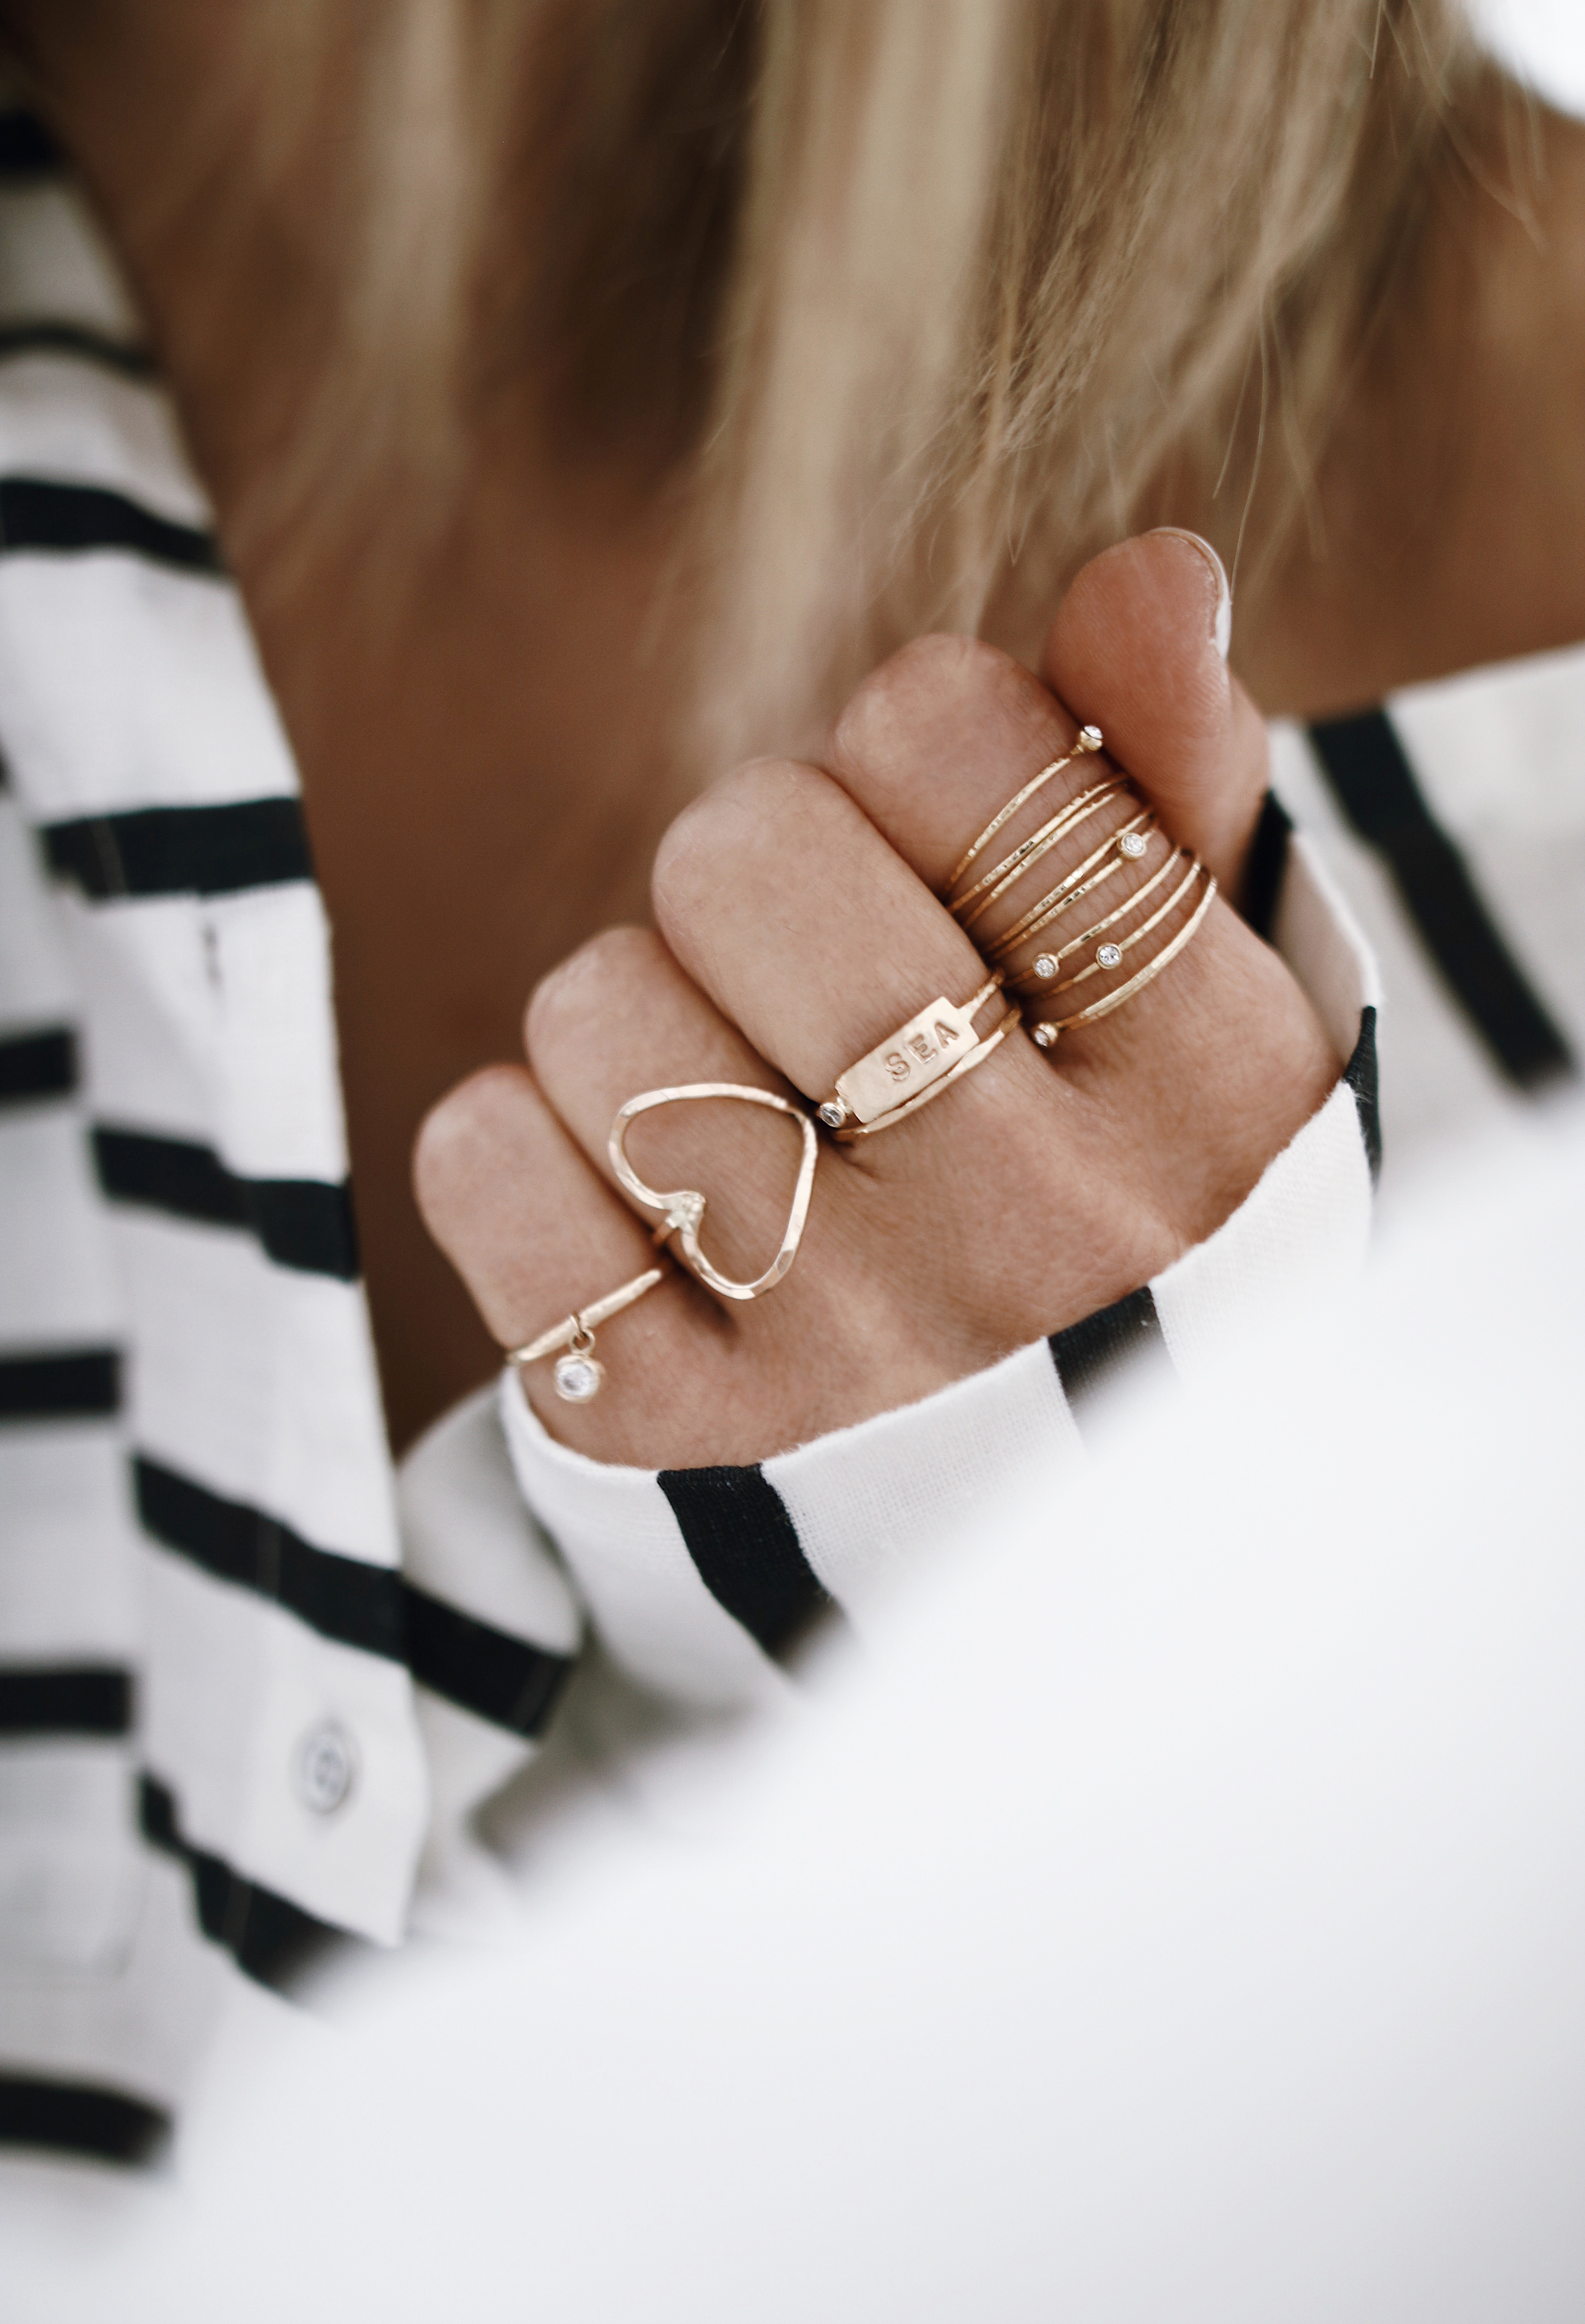 Chon & CHON - WWW.CHONANDCHON.COM Goldrings, rings stack, jewelry layering, gold jewelry, jewelry blogger